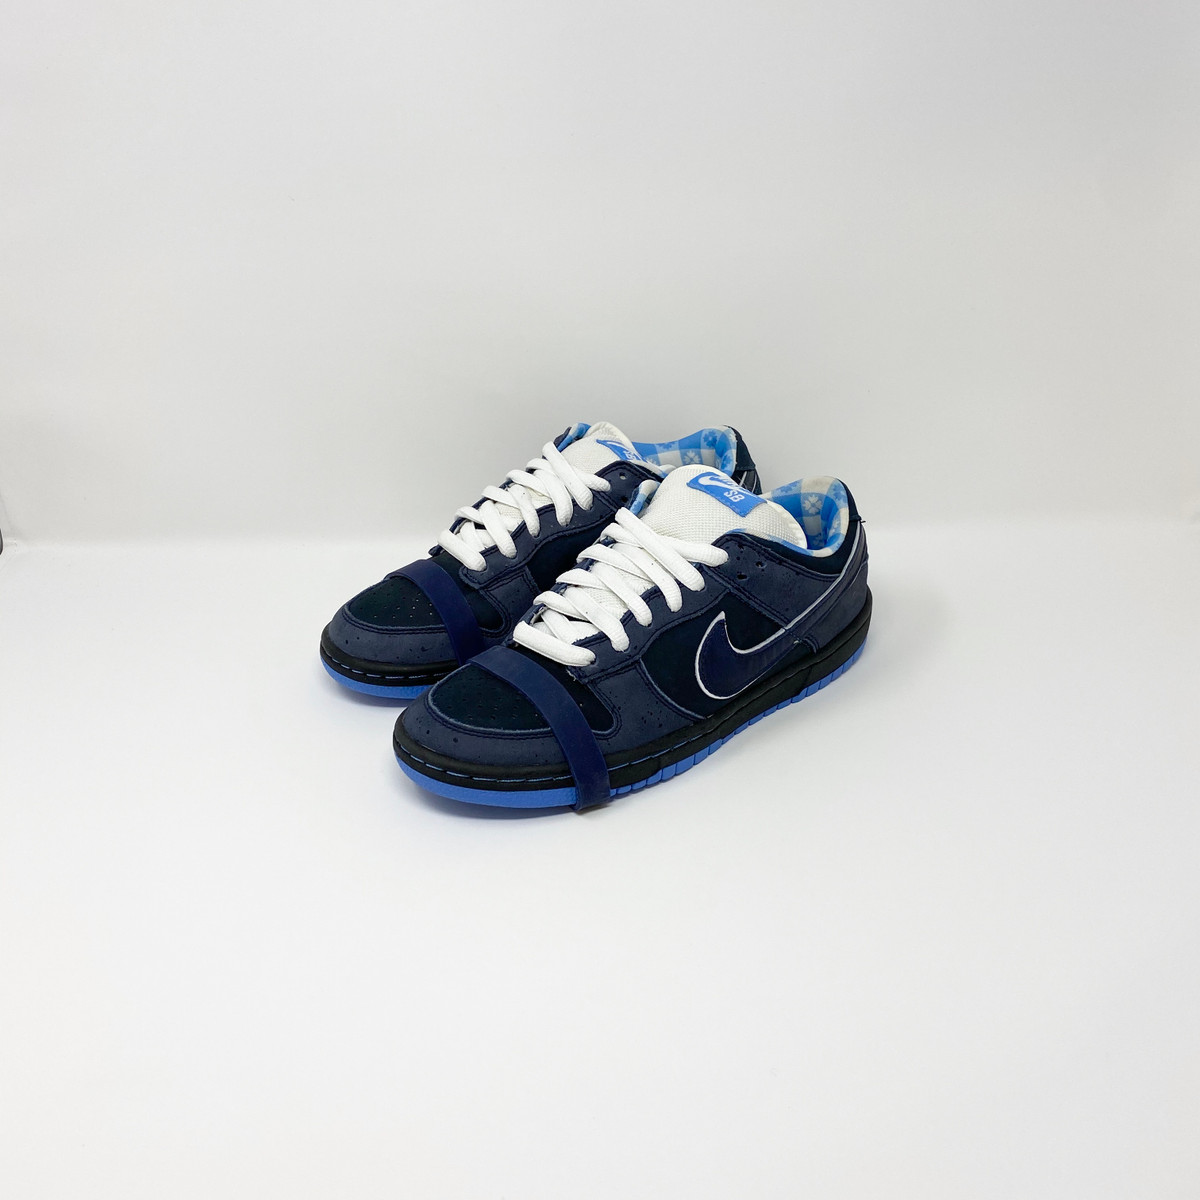 Nike Dunk Low Prem SB Blue Lobster